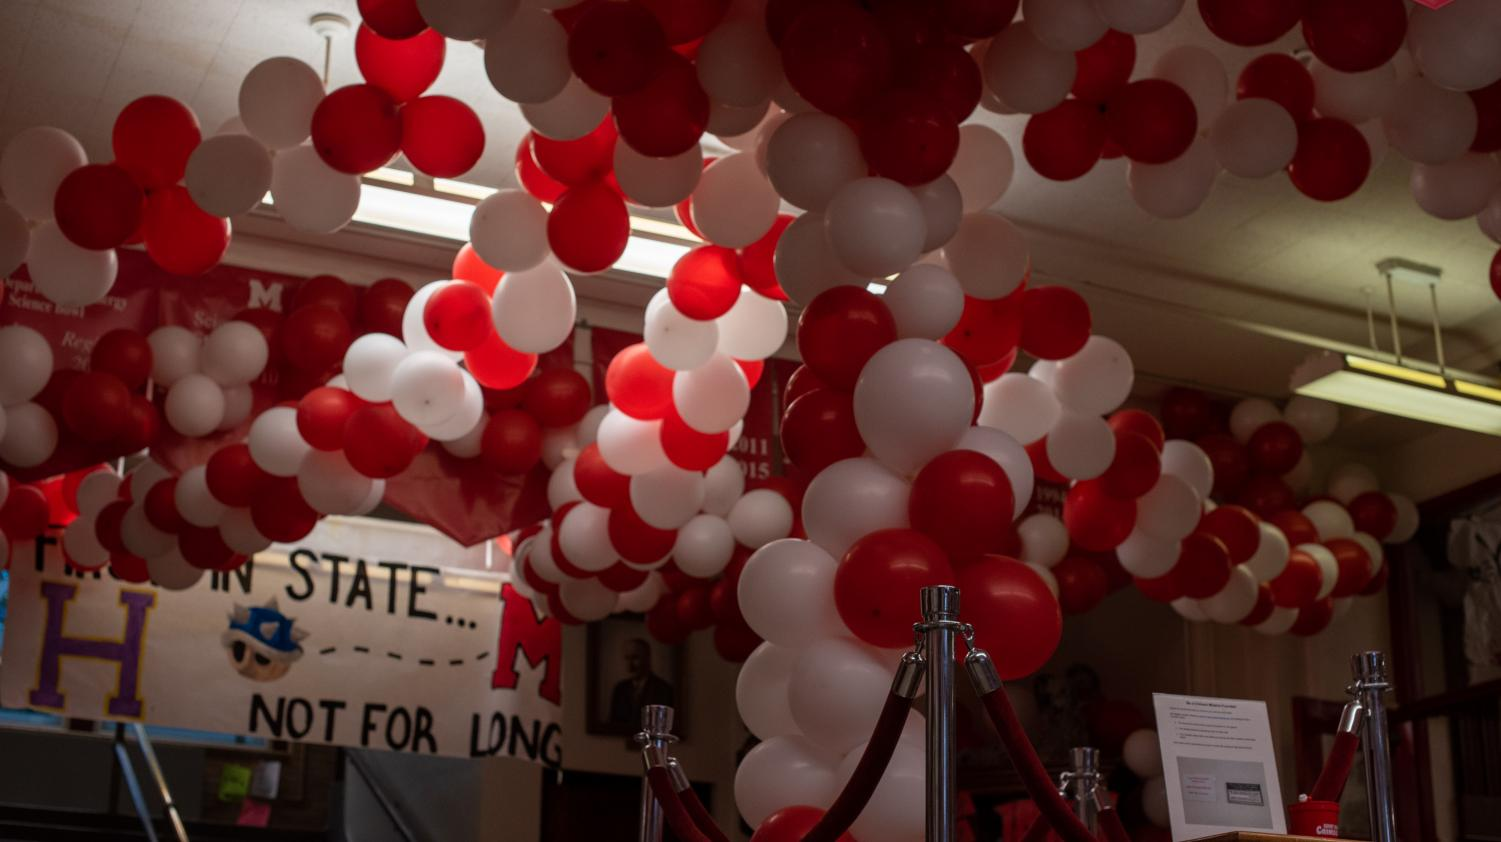 In center hall, the balloons come to hang down in the roped area at the front of the school. Photo by Cesca Campisano